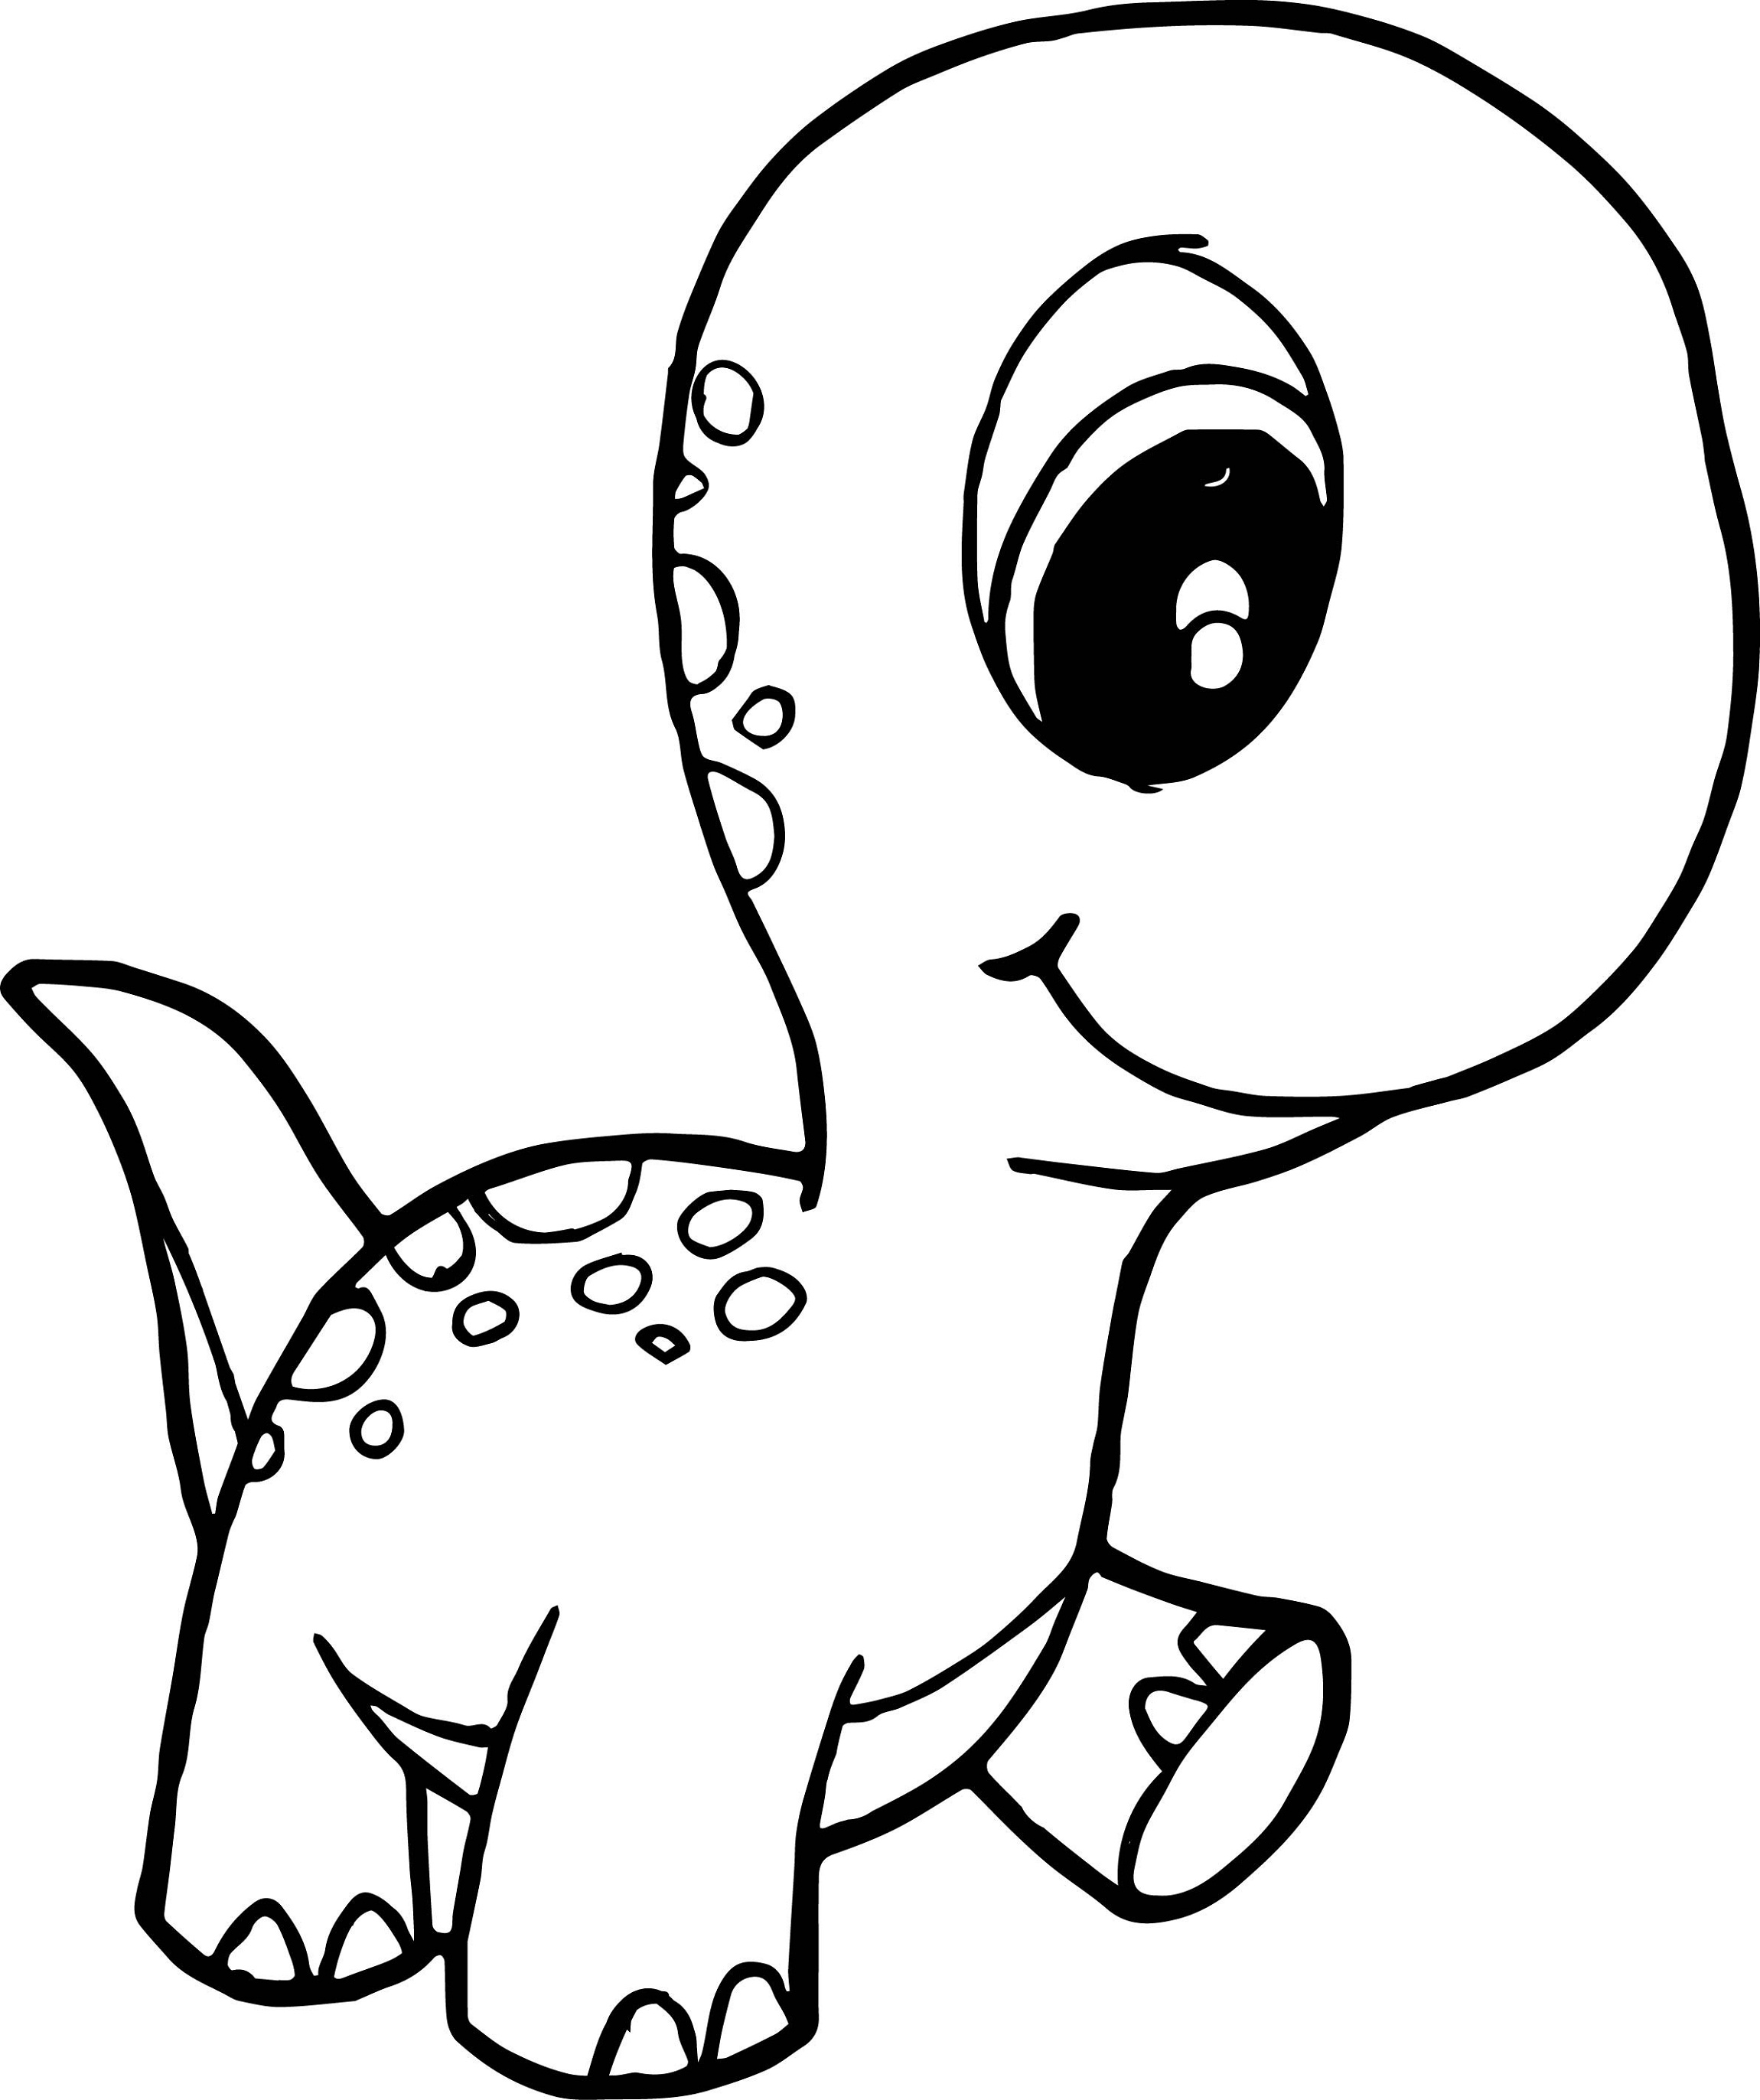 dino coloring pages easy dinosaur coloring pages coloring home coloring pages dino